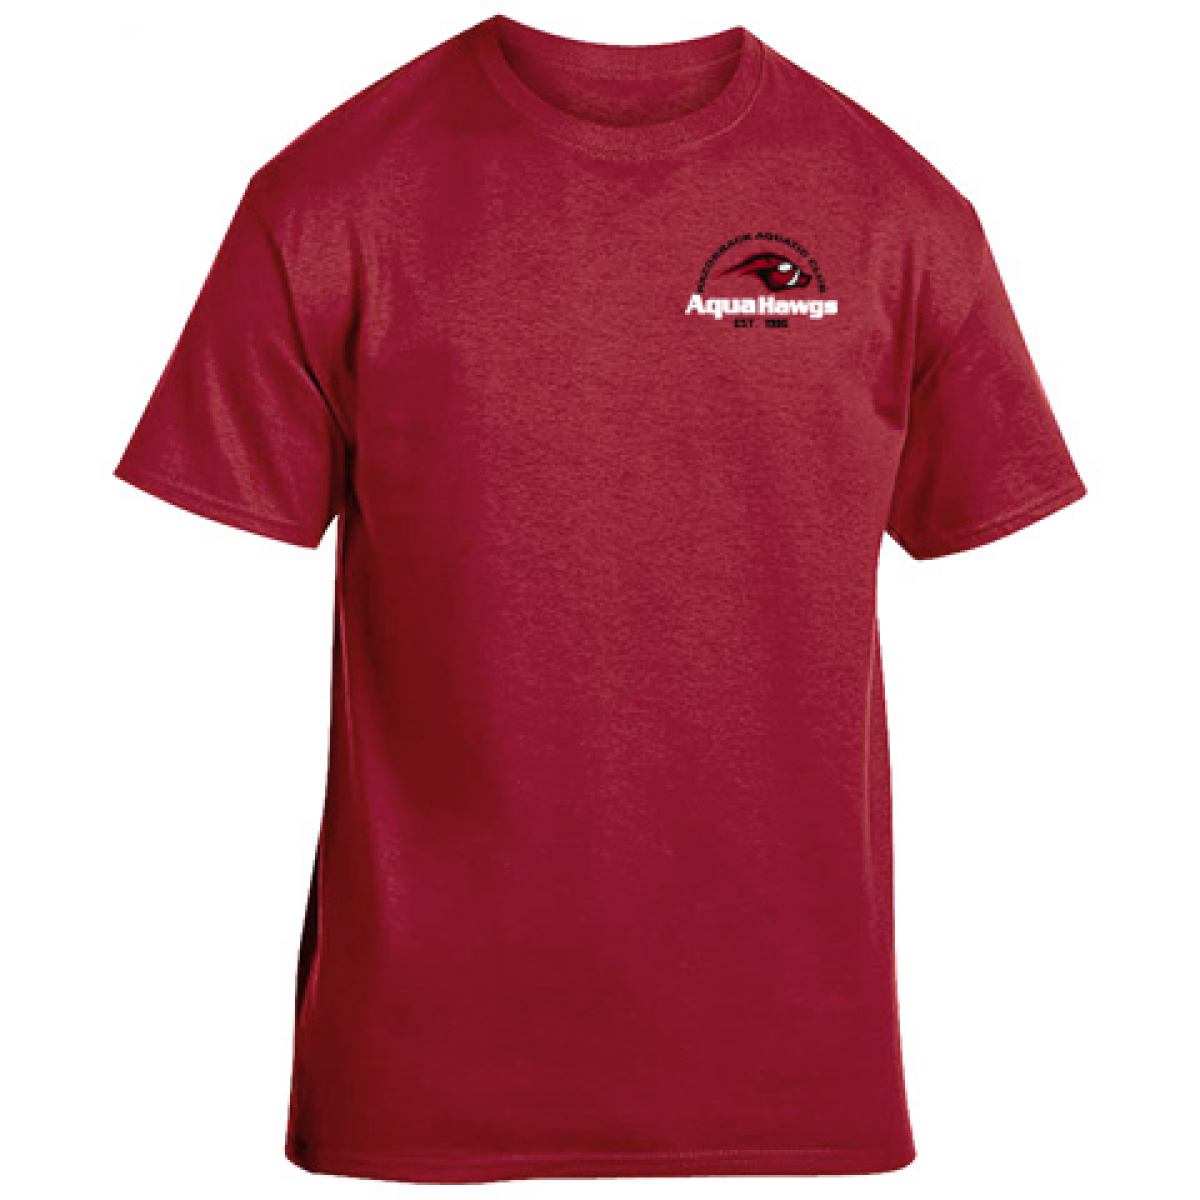 Gildan Cotton Short Sleeve T-Shirt - Cardinal Red-Cardinal Red-XL